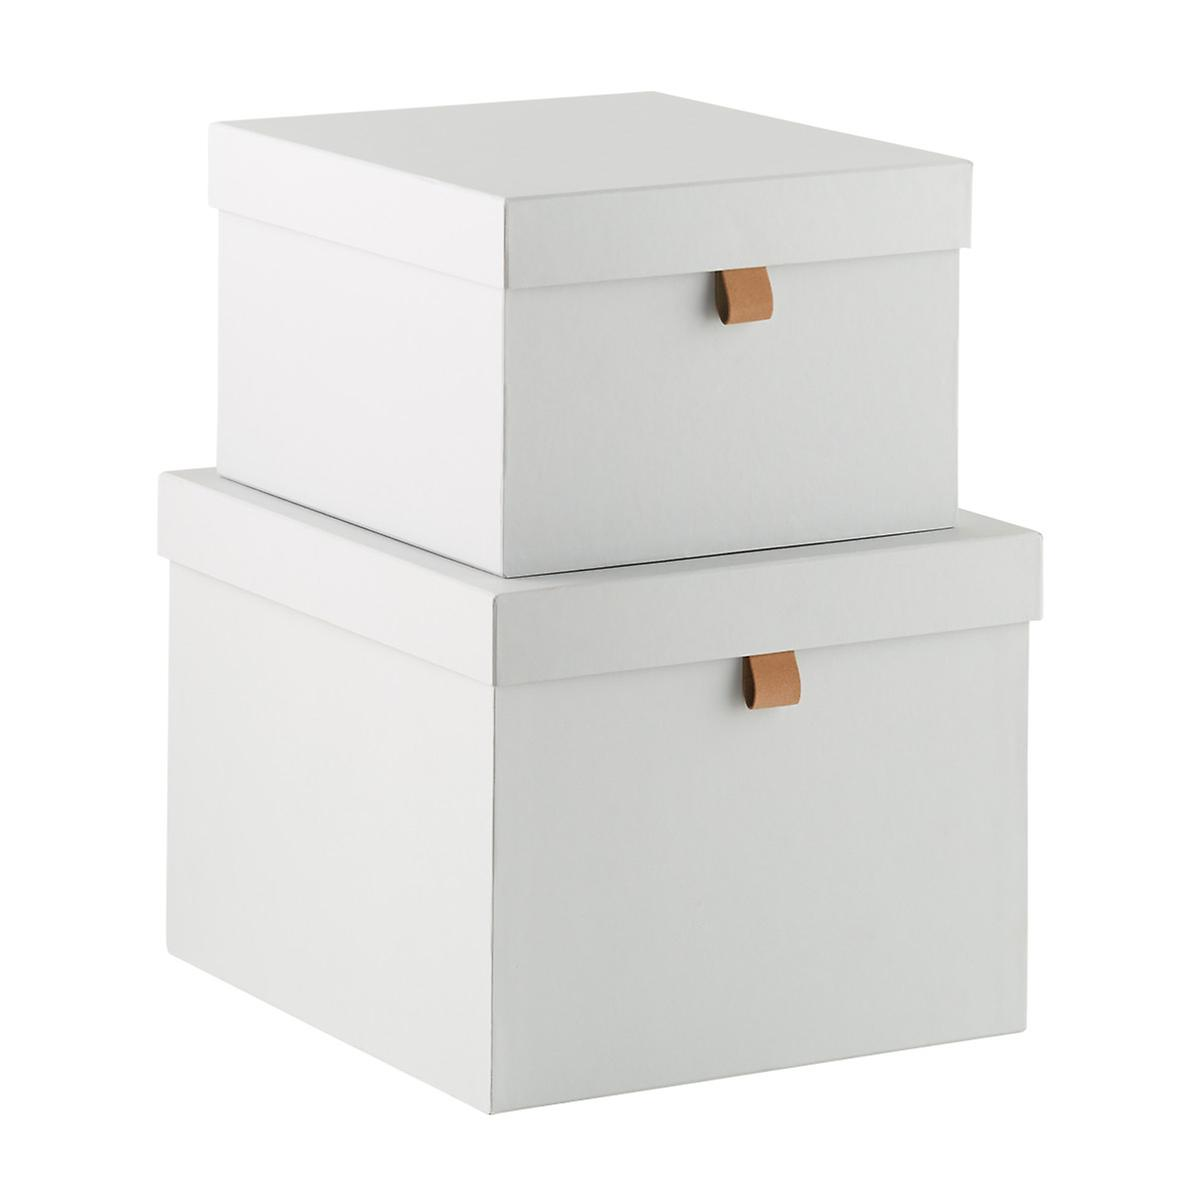 Bigso Light Grey Stockholm Storage Boxes